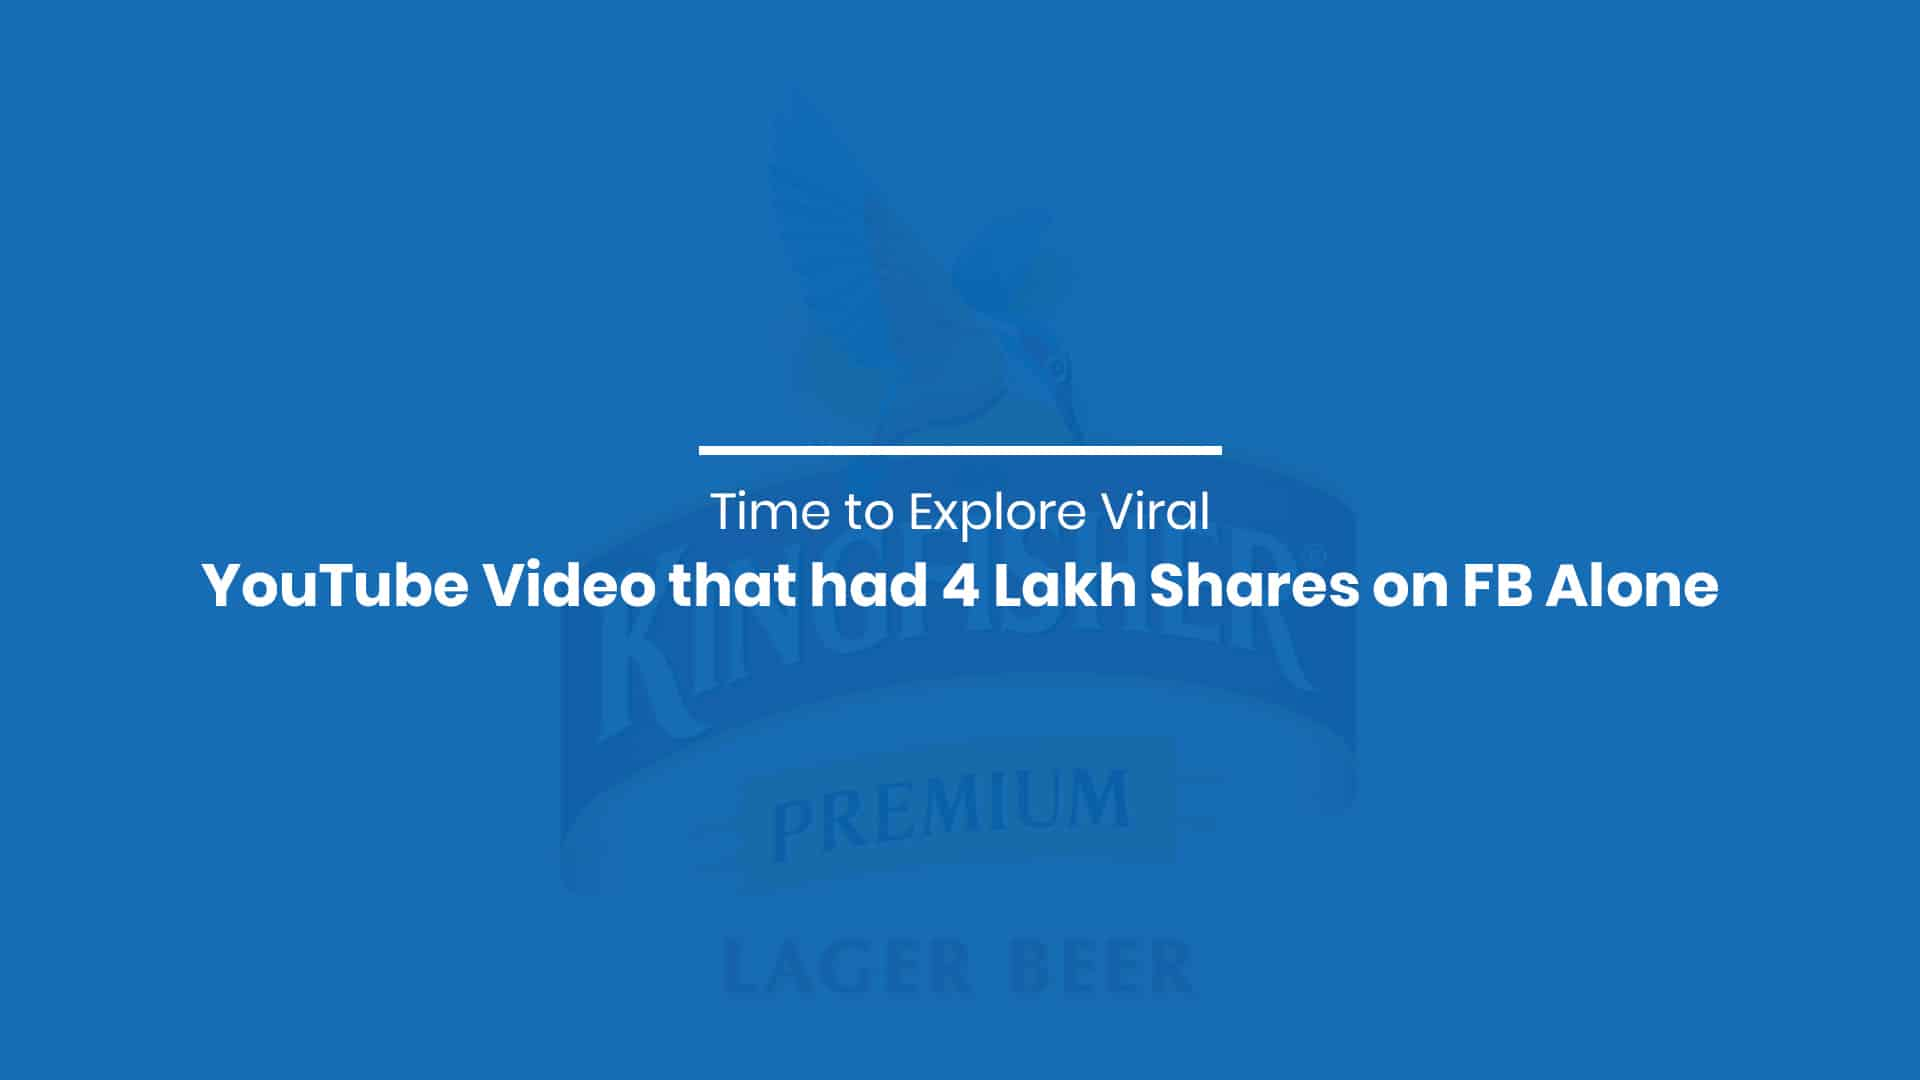 Explore Viral YouTube Video that had 4 Lakh Shares on FB Alone